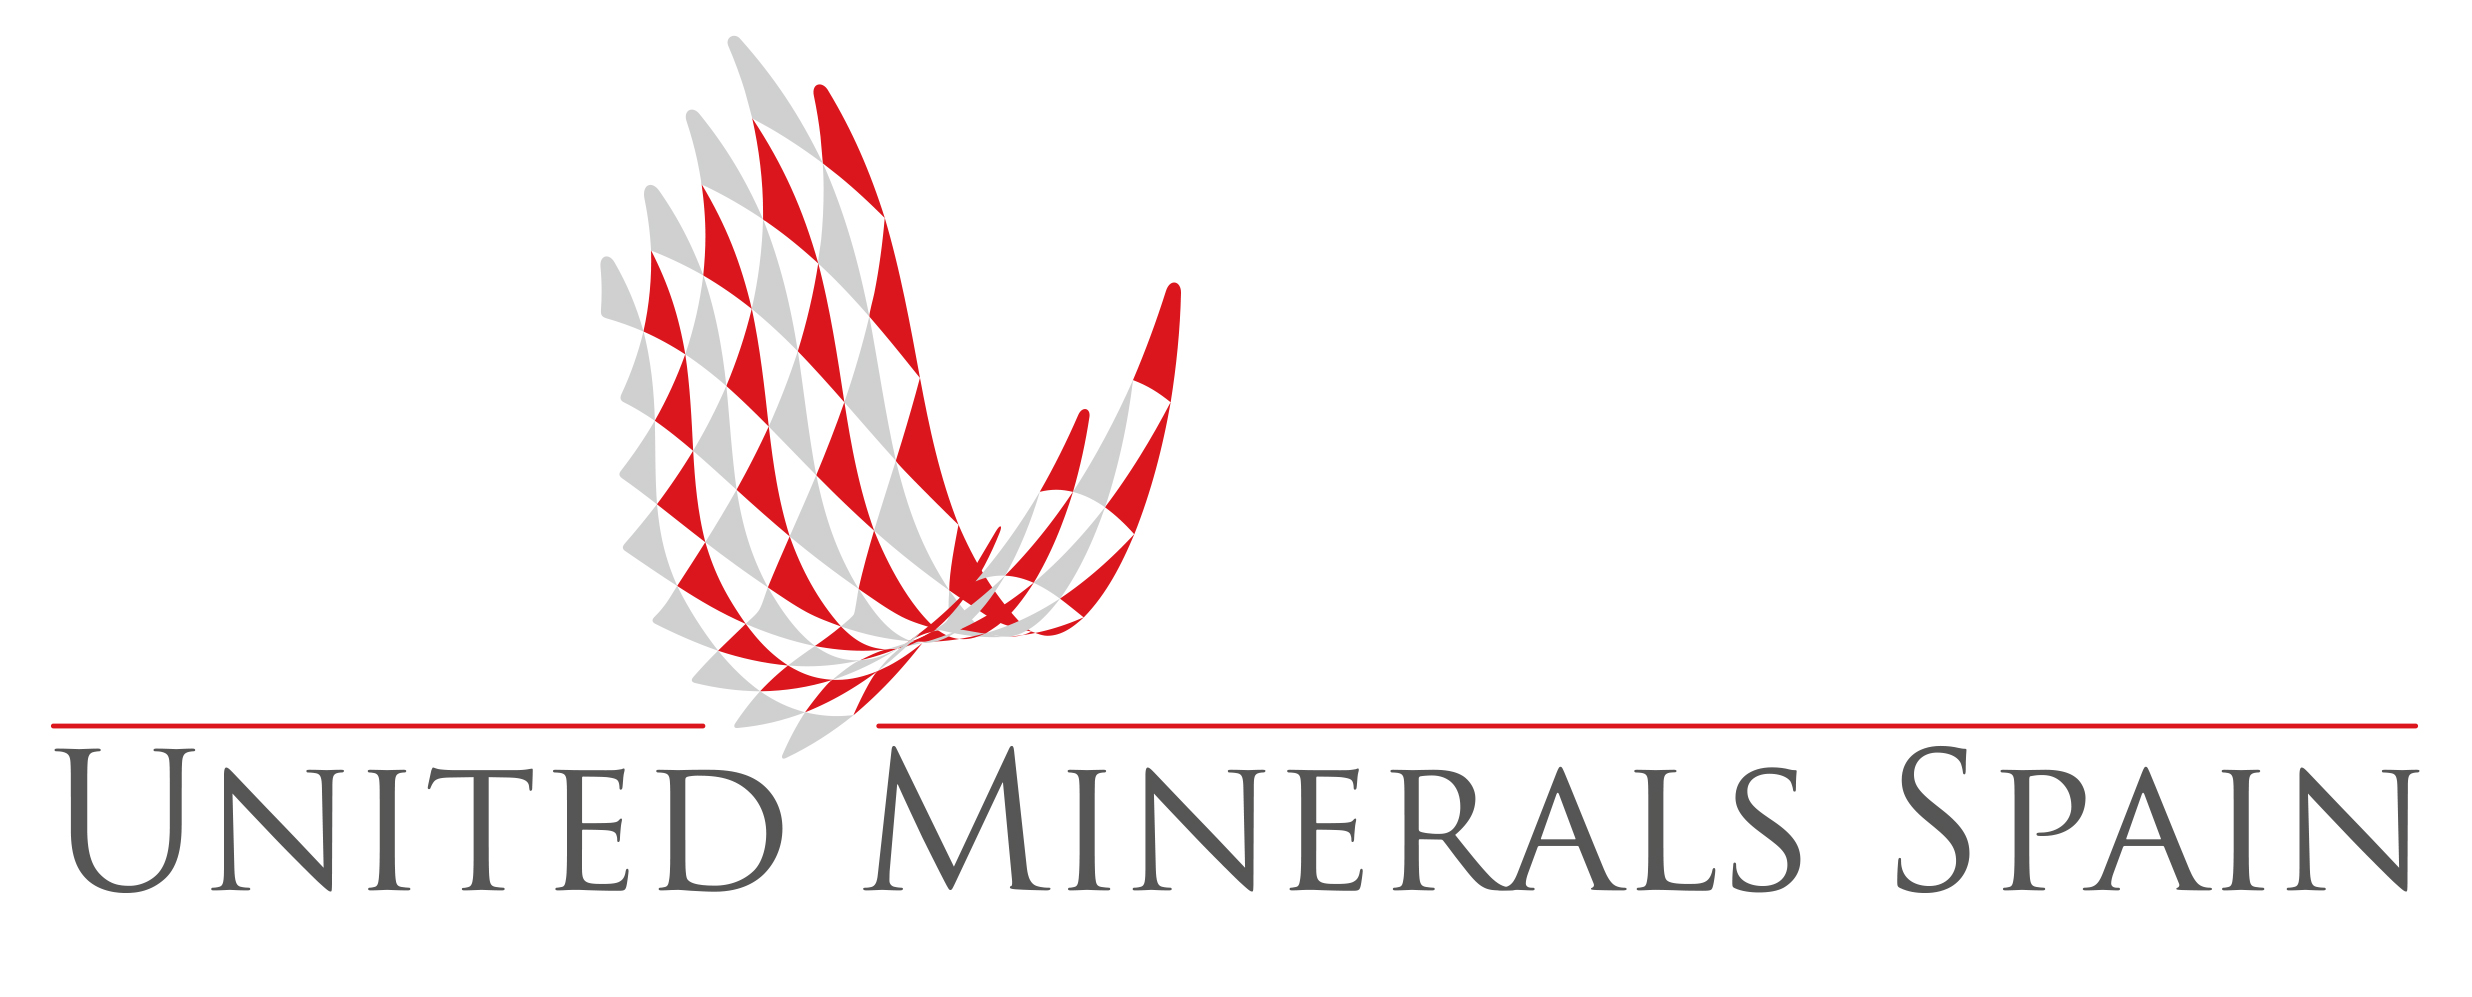 UNITED MINERAL SPAIN